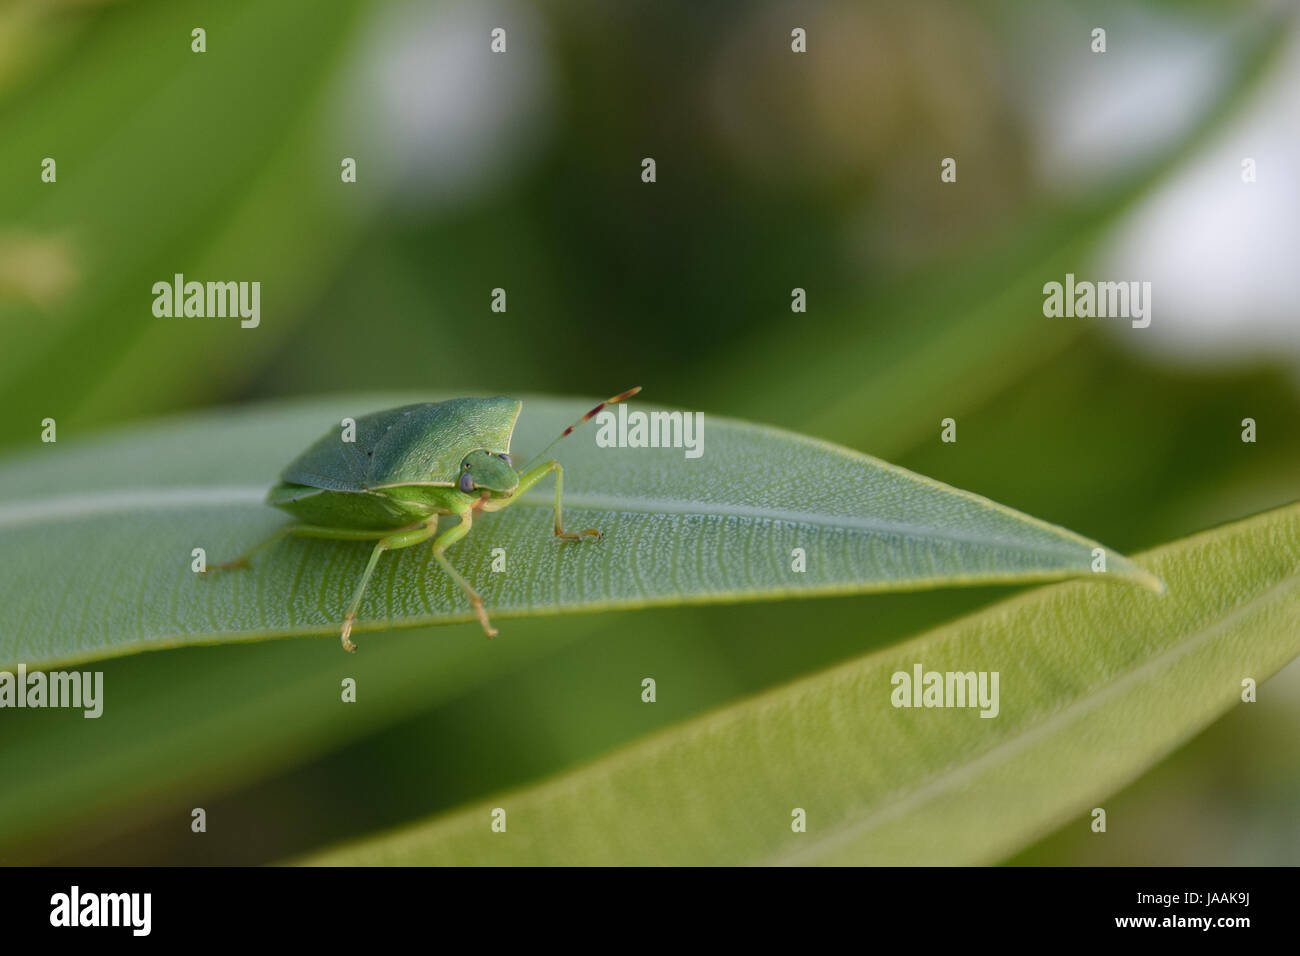 Green shield bug (Palomena prasina) adult on a leaf in Porto Santo, Portugal - Stock Image